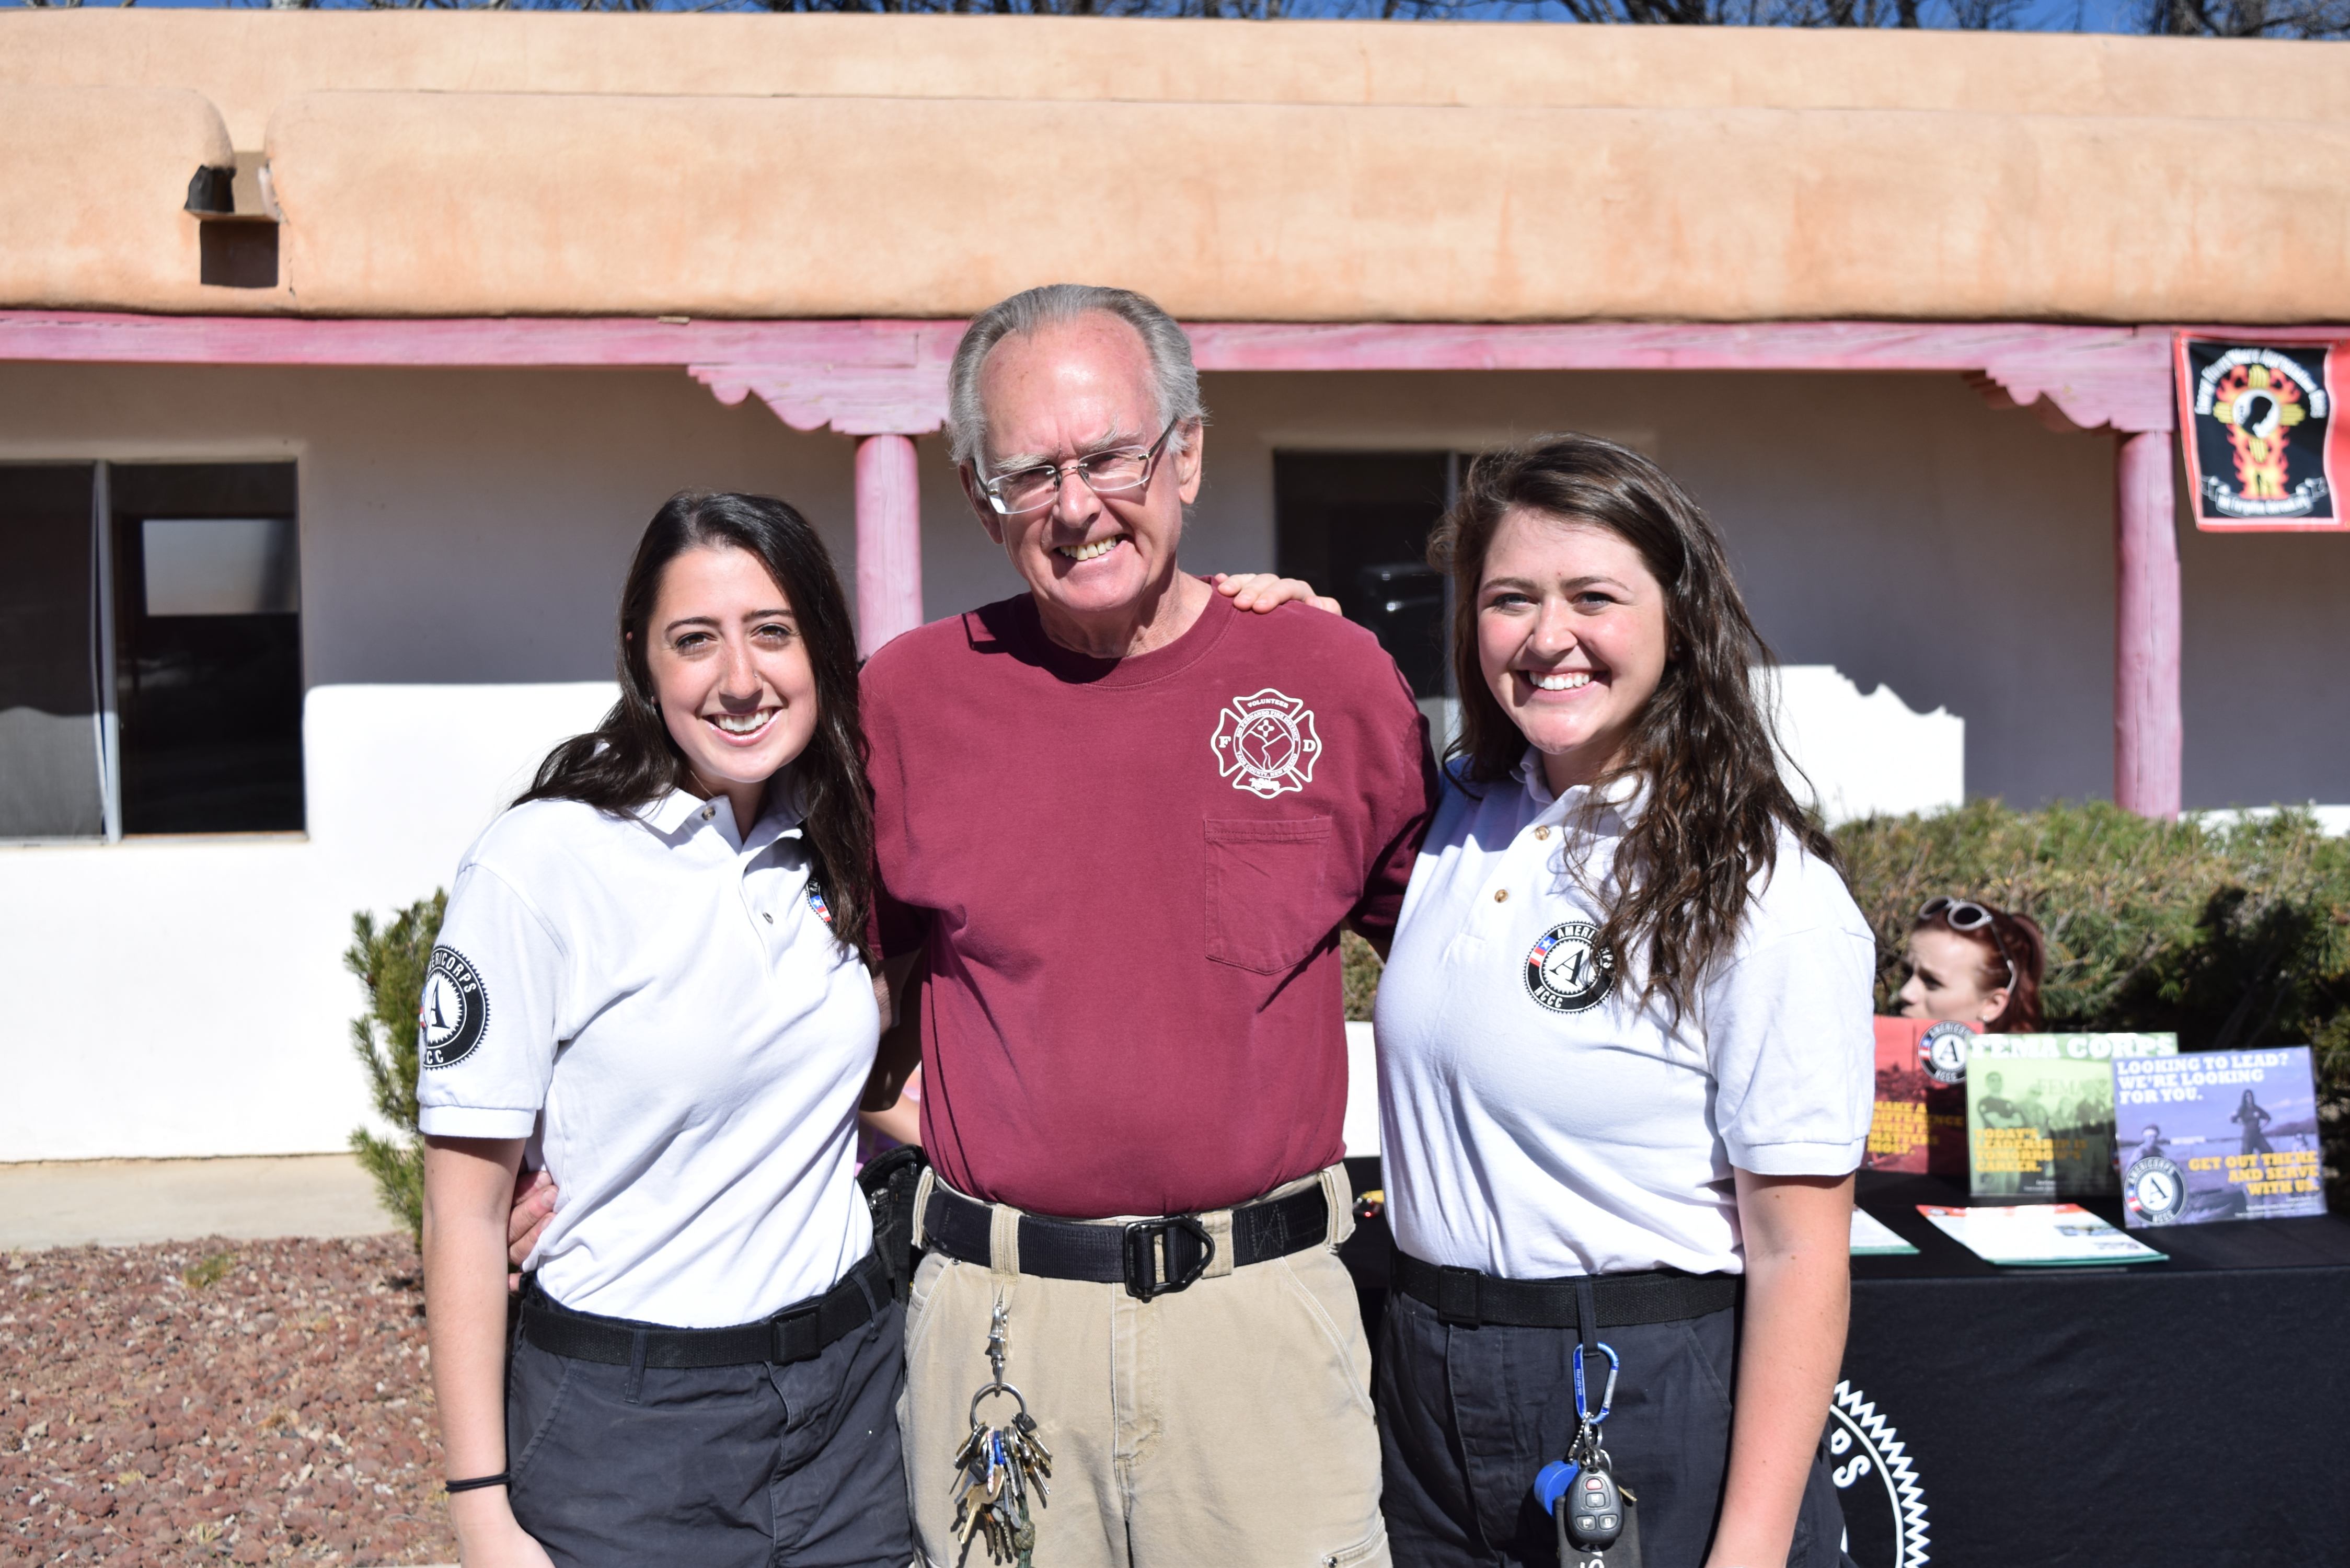 Elder wearing firefighter T-shirt standing outside between two young Americorps volunteers, embracing them side by side